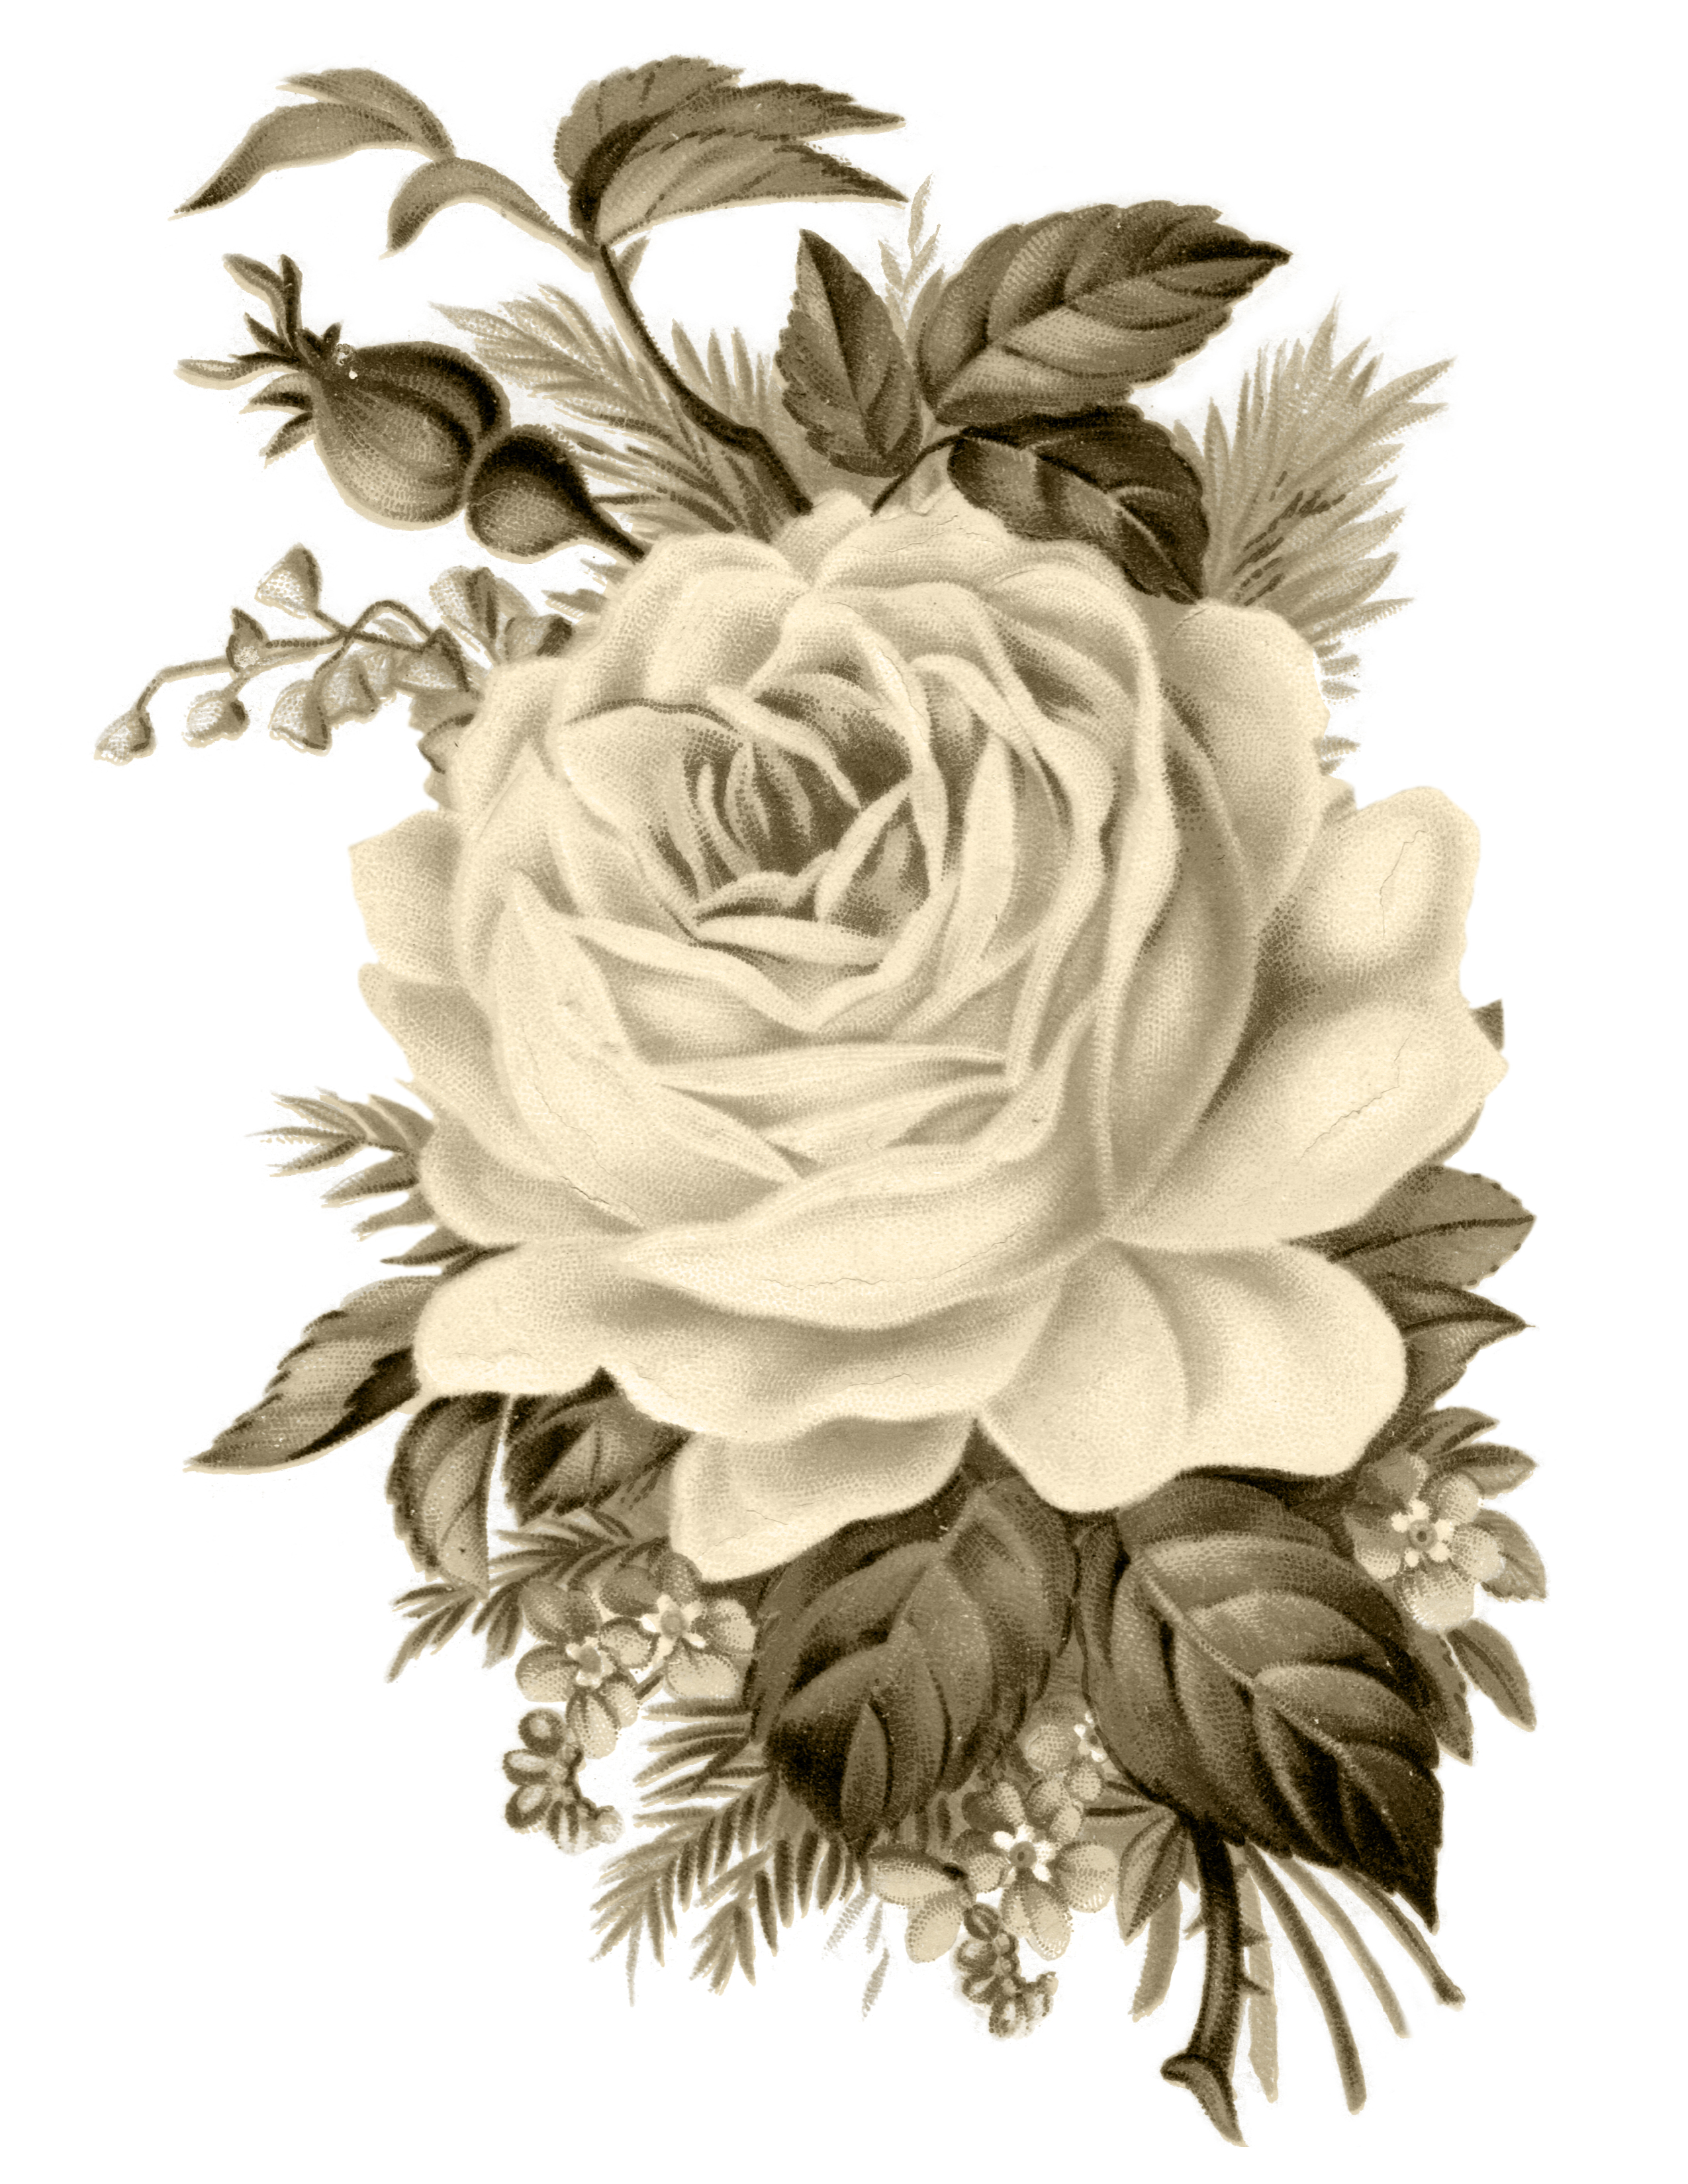 Vintage image sepia clipart vector free download Clip Art: Royalty Free Gorgeous Vintage Rose Image - Free ... vector free download